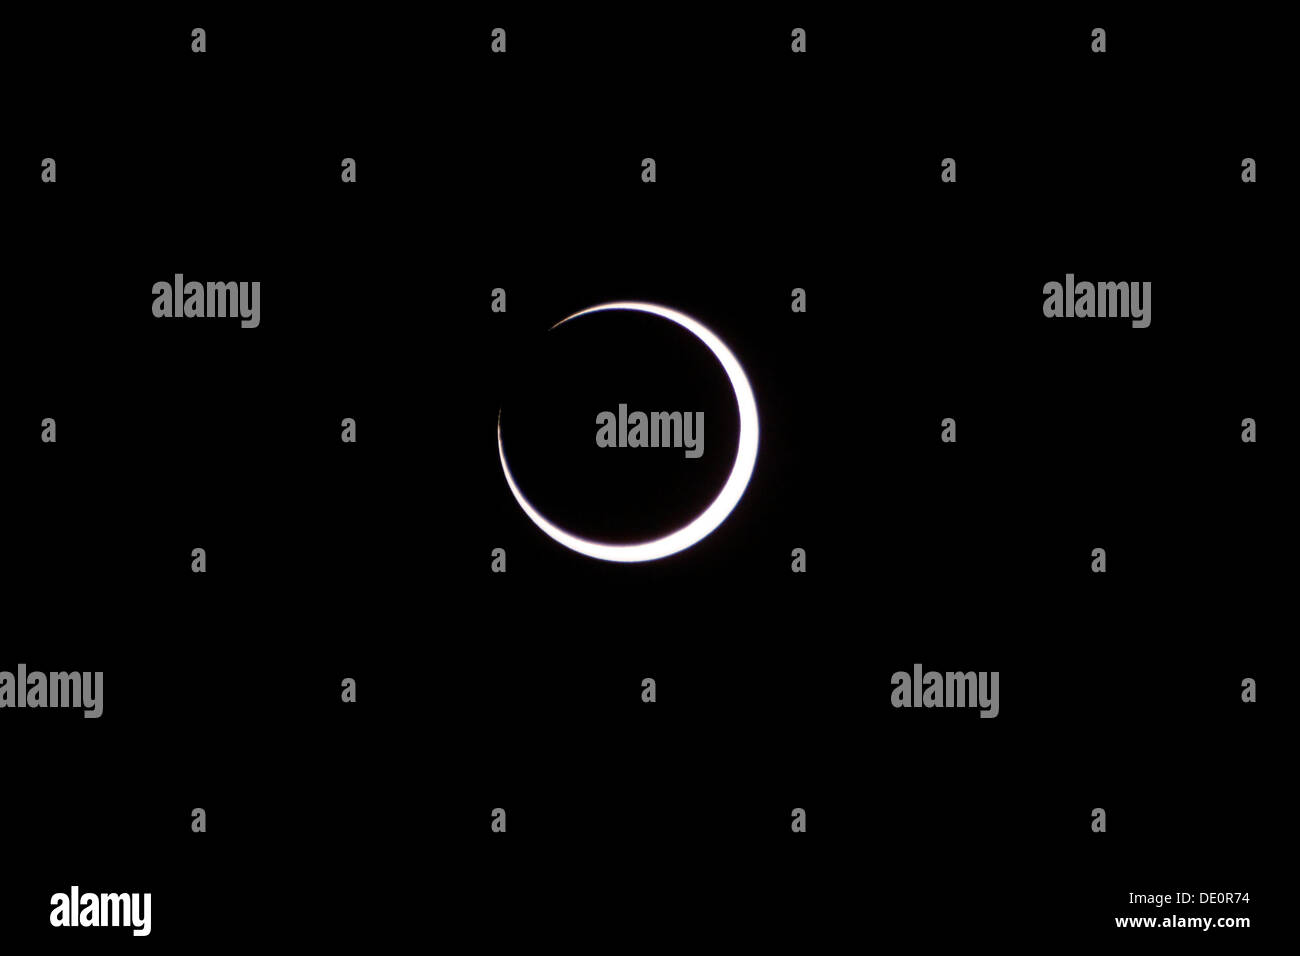 Annular solar eclipse of 20th May 2012 in the U.S. - Stock Image